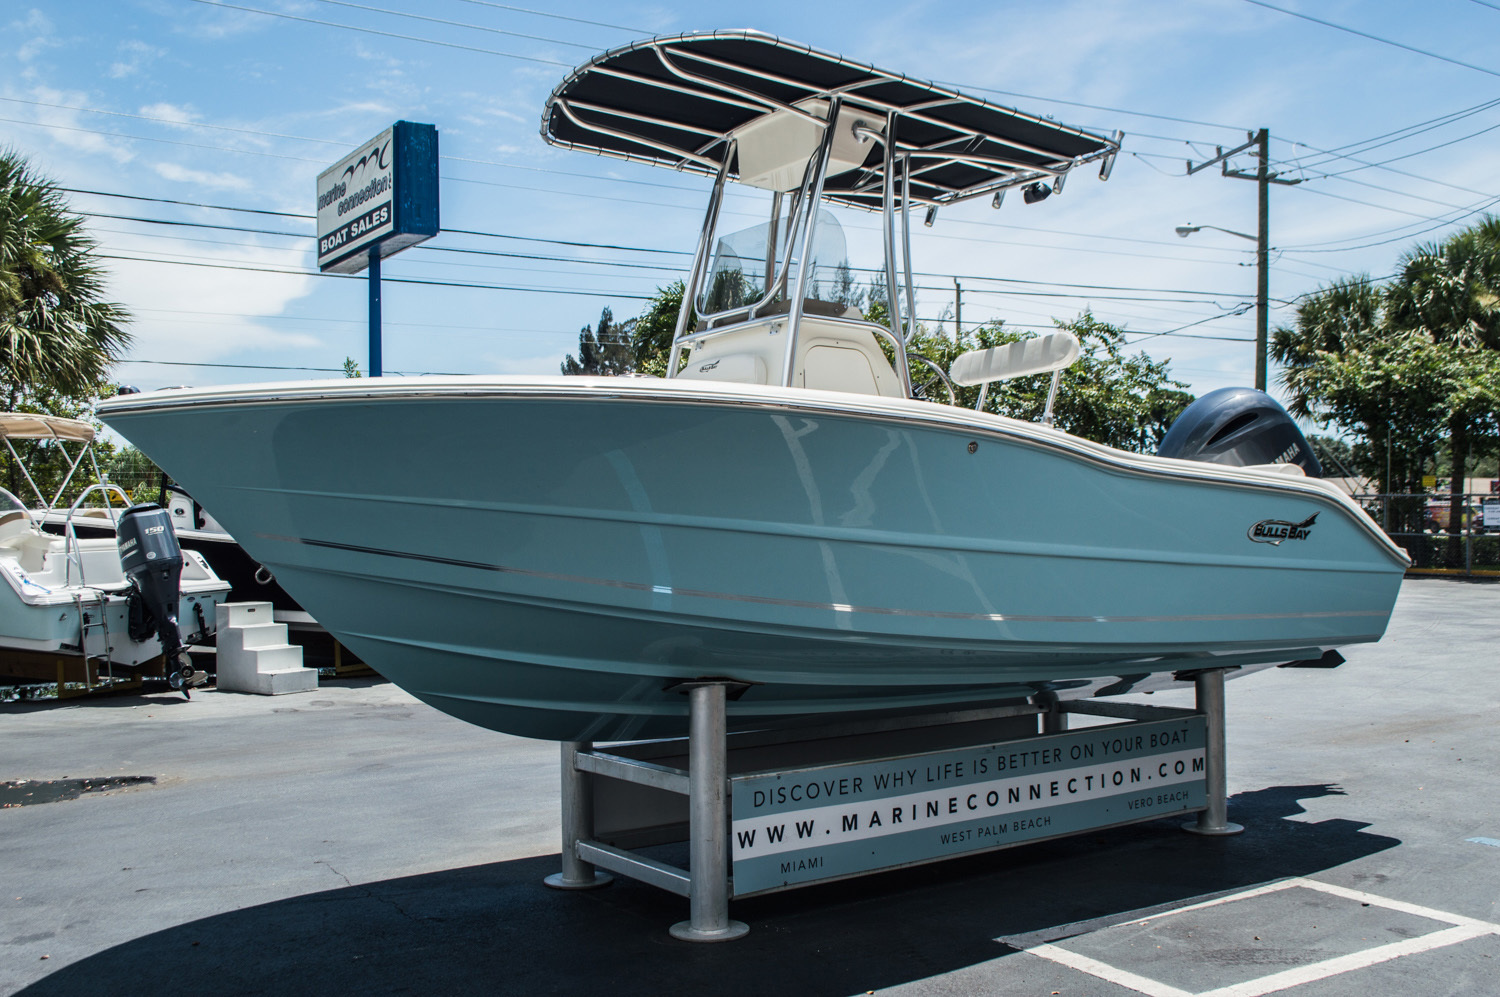 Thumbnail 3 for New 2016 Bulls Bay 200 CC Center Console boat for sale in West Palm Beach, FL